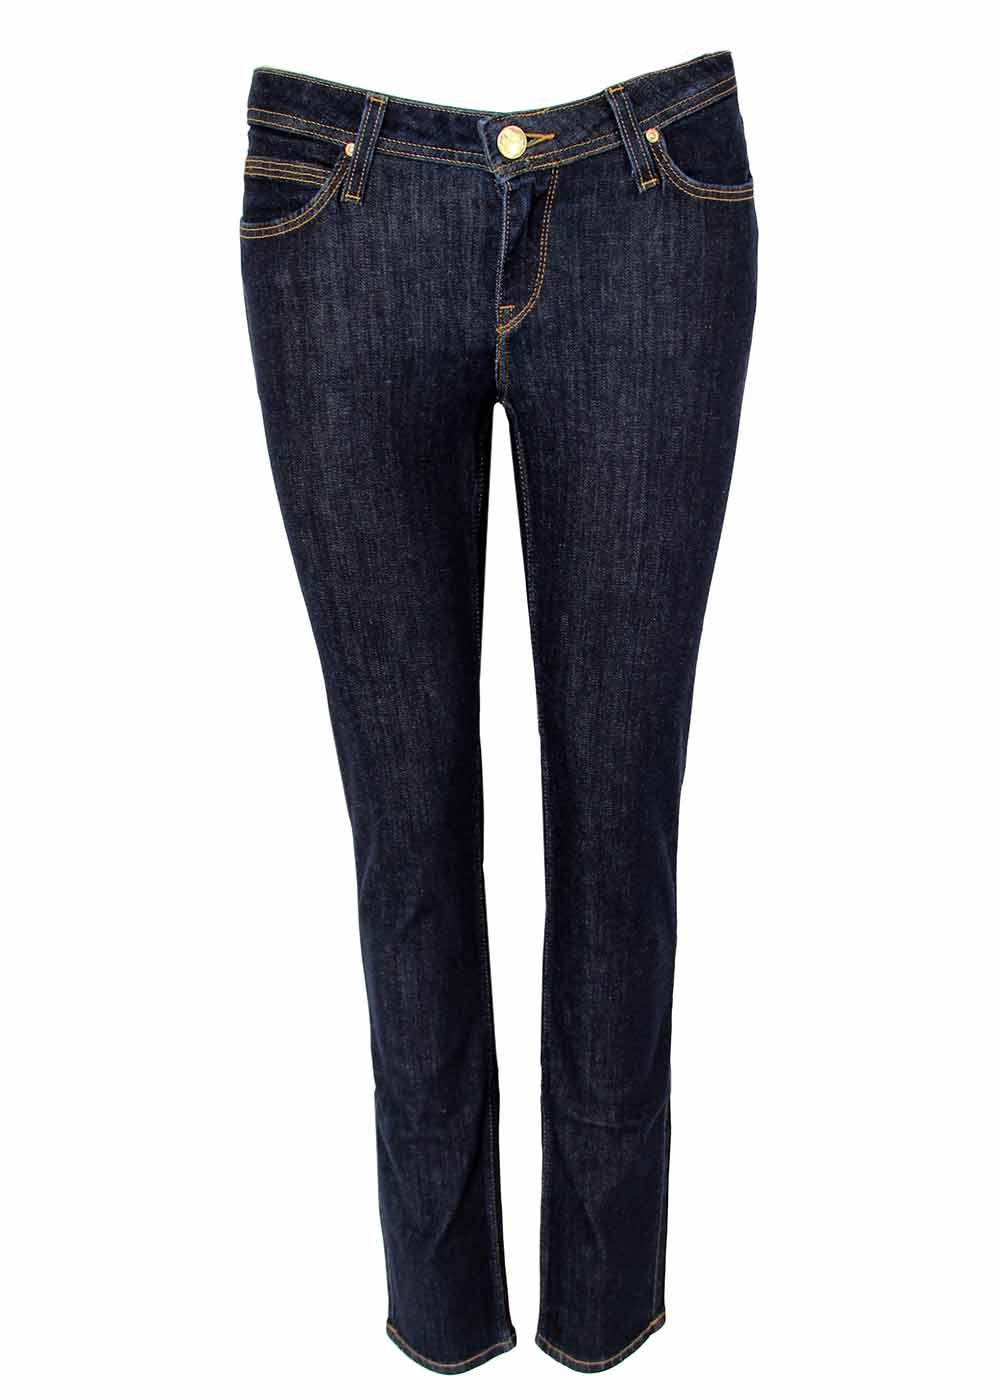 Emlyn LEE Retro Straight Tapered Fit Denim Jeans